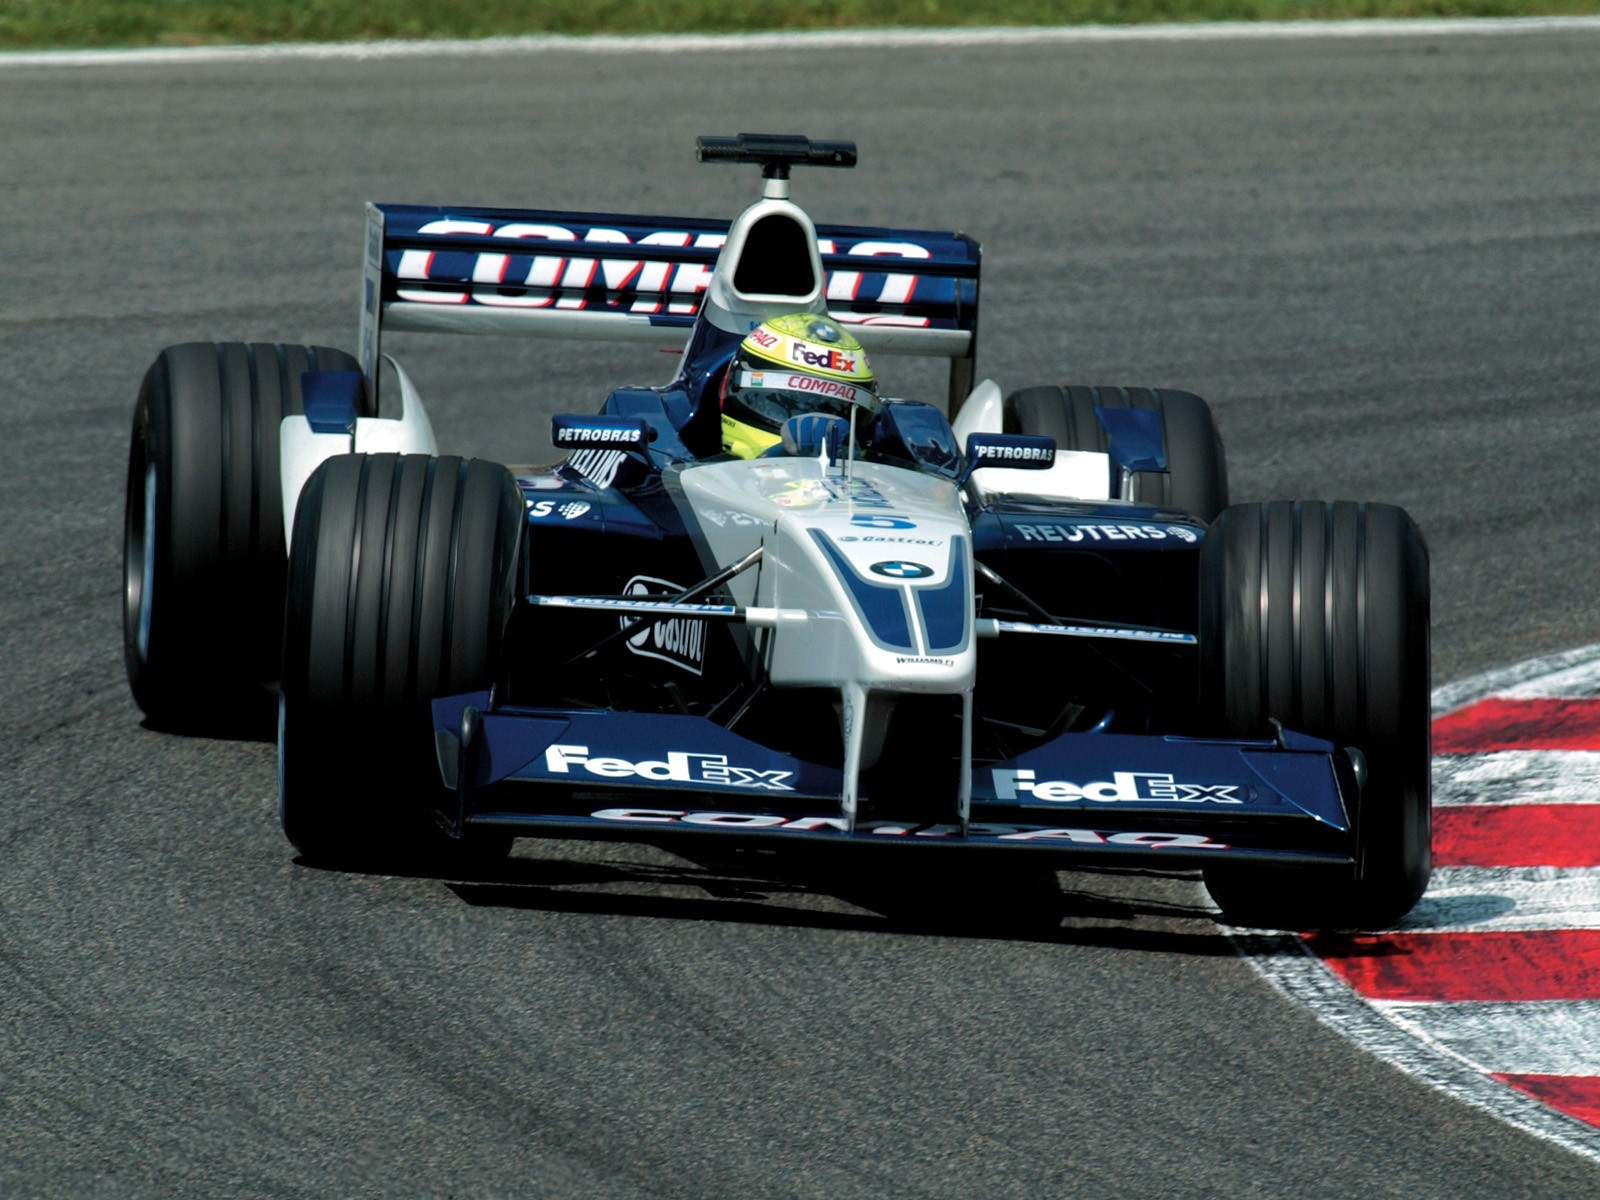 Williams BMW V10 FW24 2002